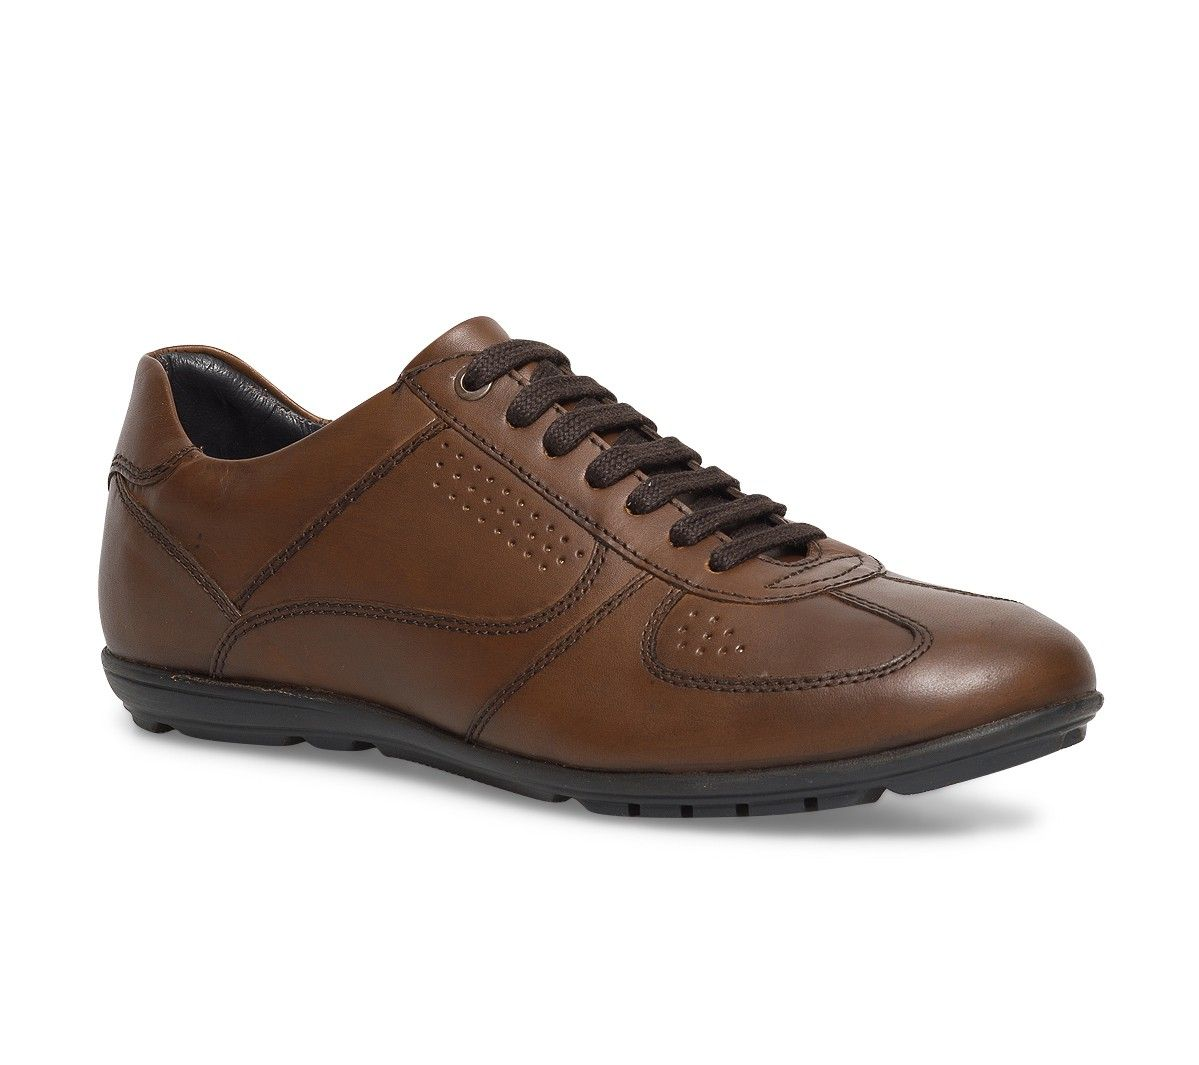 Björn Borg Lewis Tan/Tan, Chaussures, Baskets & chaussures de sport, Baskets, Brun, Male, 41